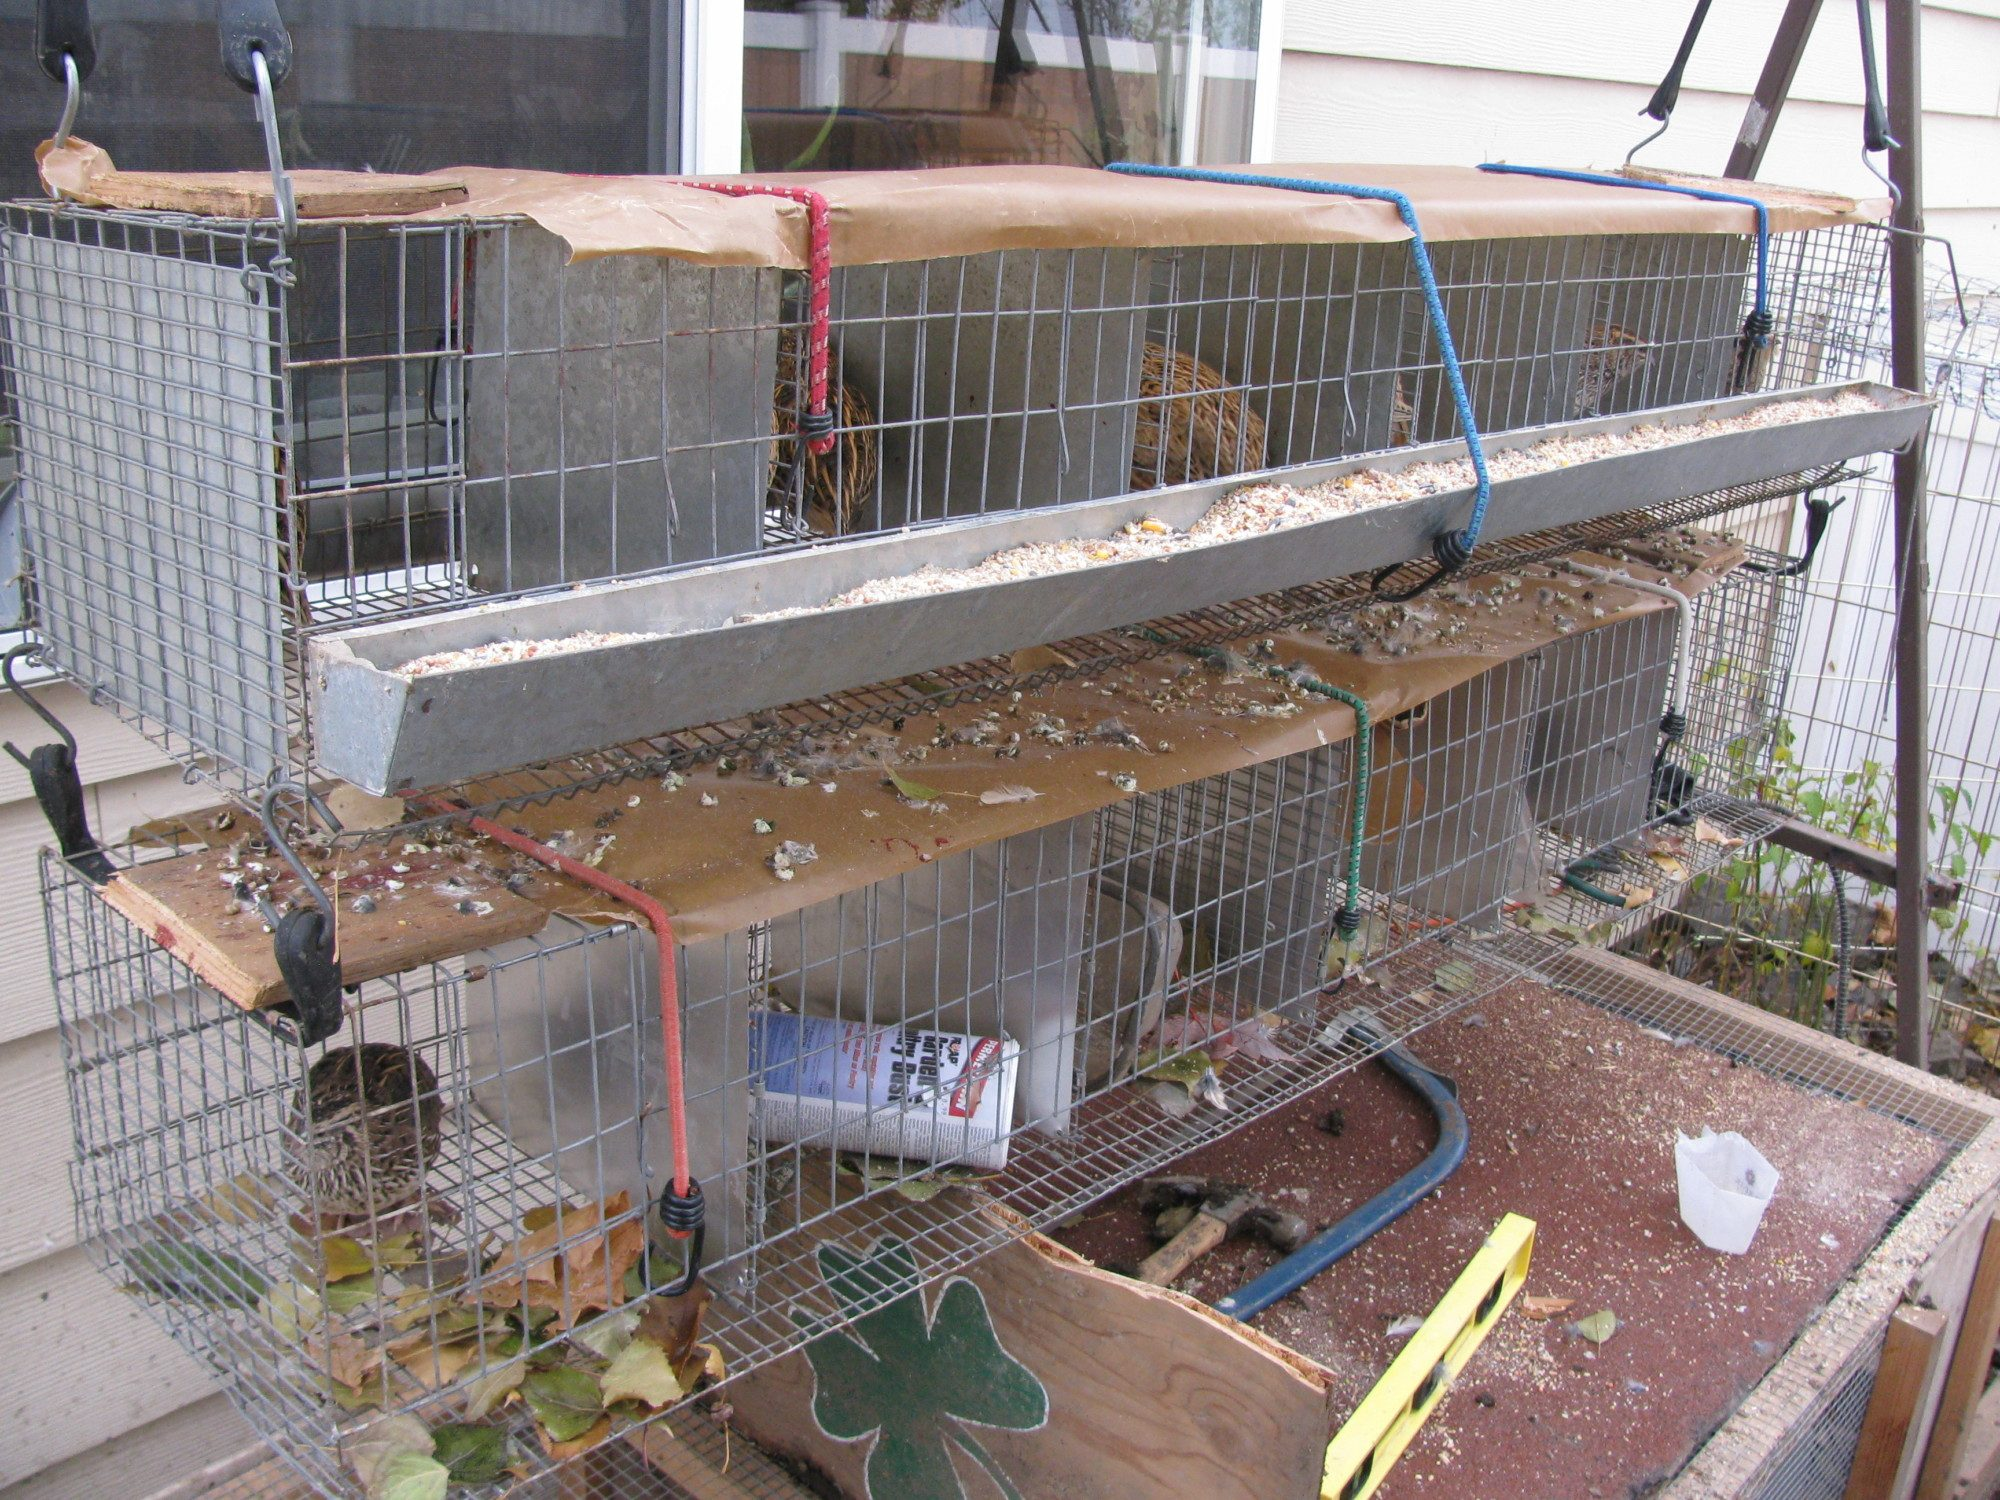 quails cage - photo #34